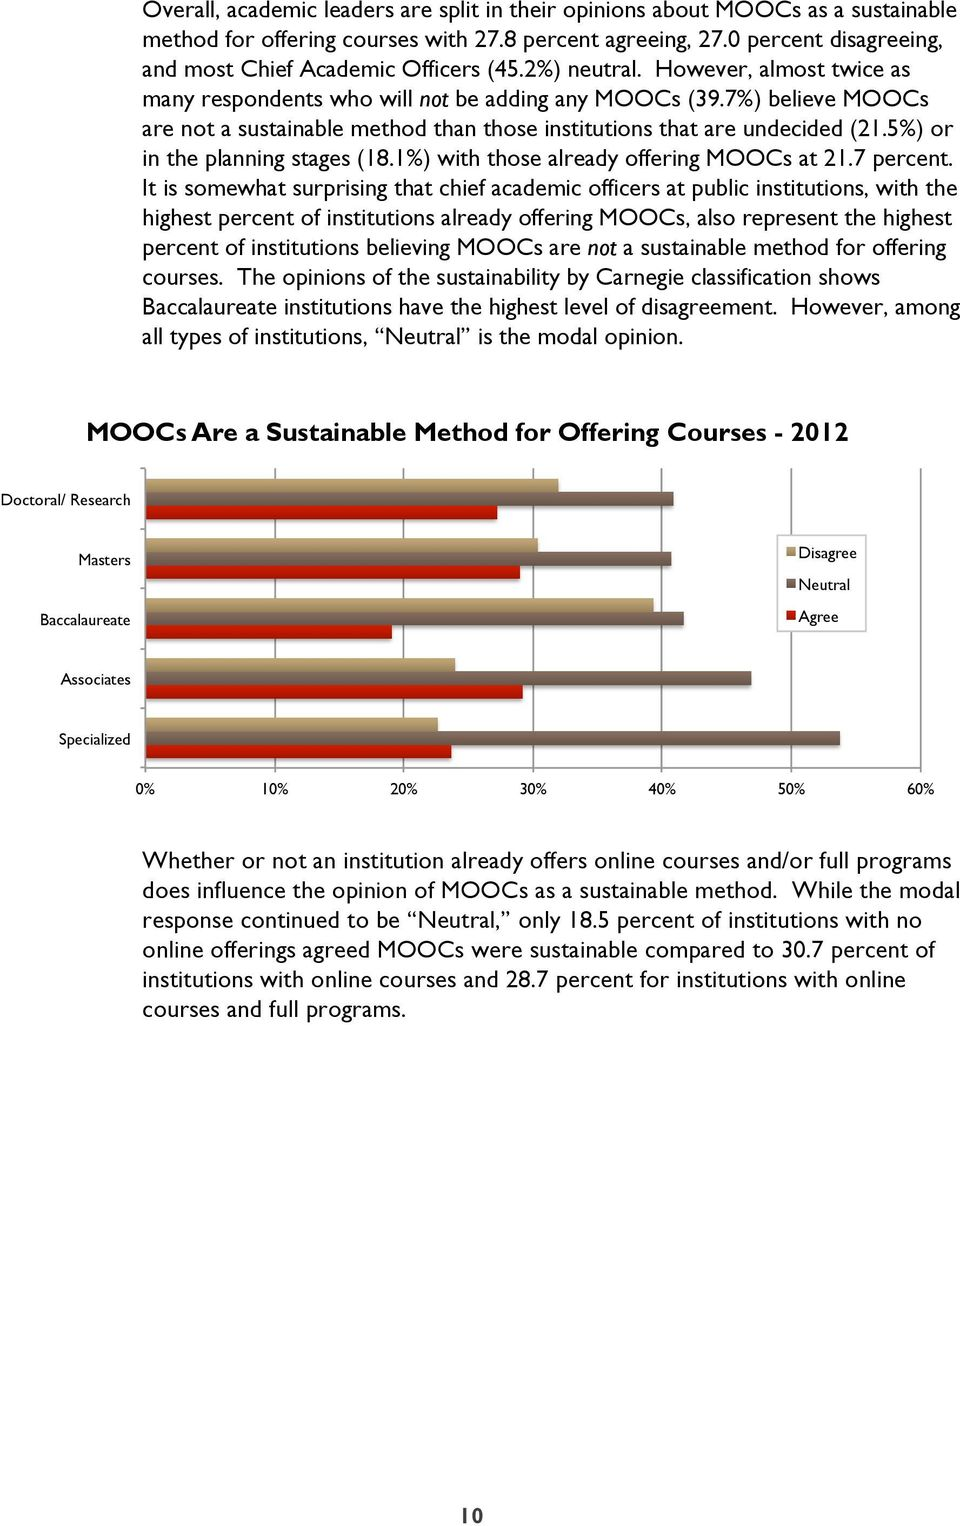 7%) believe MOOCs are not a sustainable method than those institutions that are undecided (21.5%) or in the planning stages (18.1%) with those already offering MOOCs at 21.7 percent.